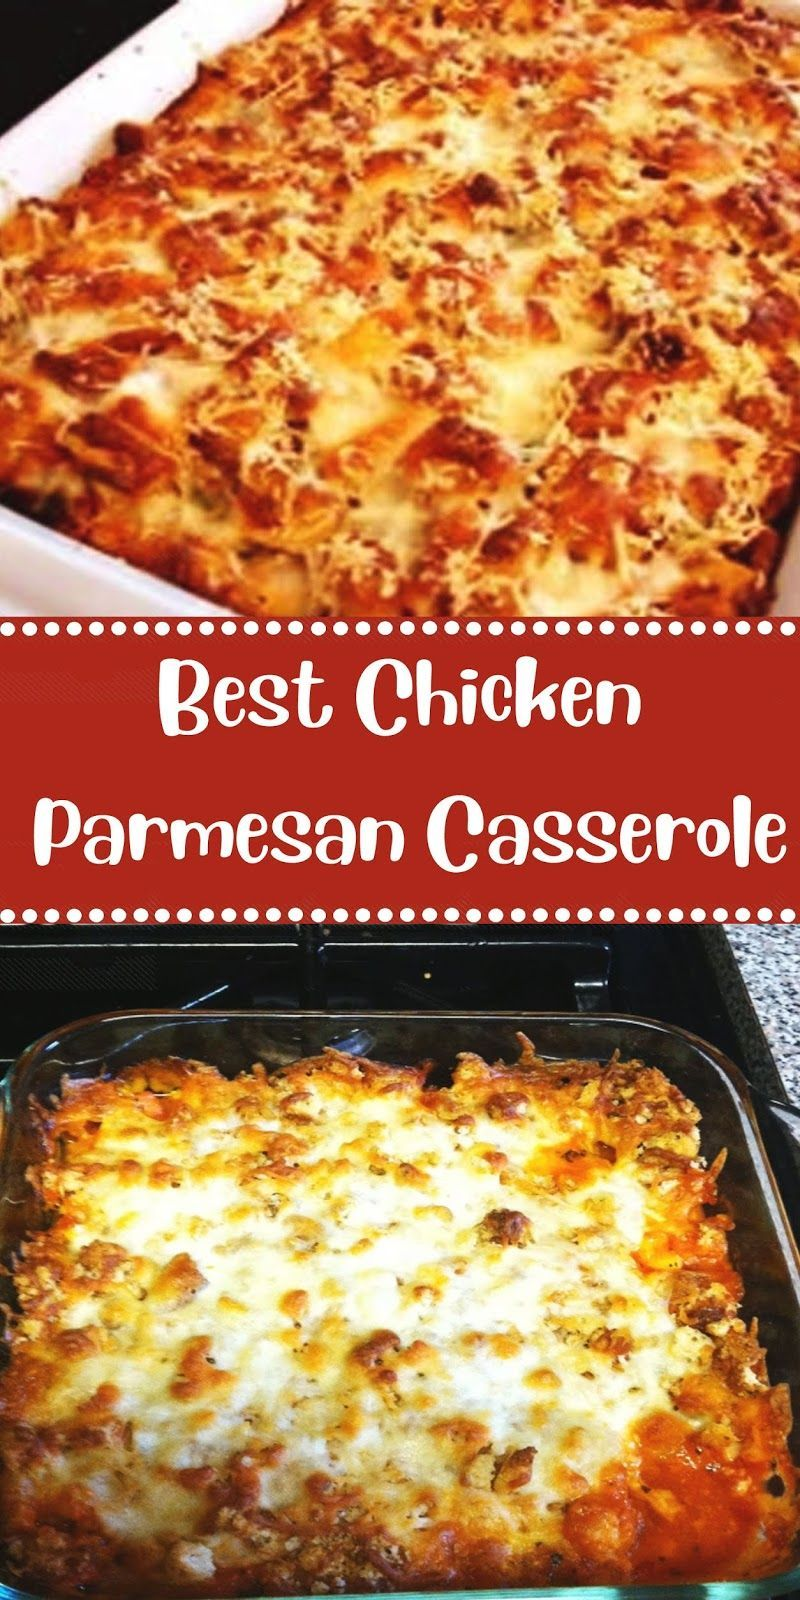 Best Chicken Parmesan Casserole In 2020 Chicken Parmesan Casserole Chicken Parmesan Recipes Chicken Recipes Casserole